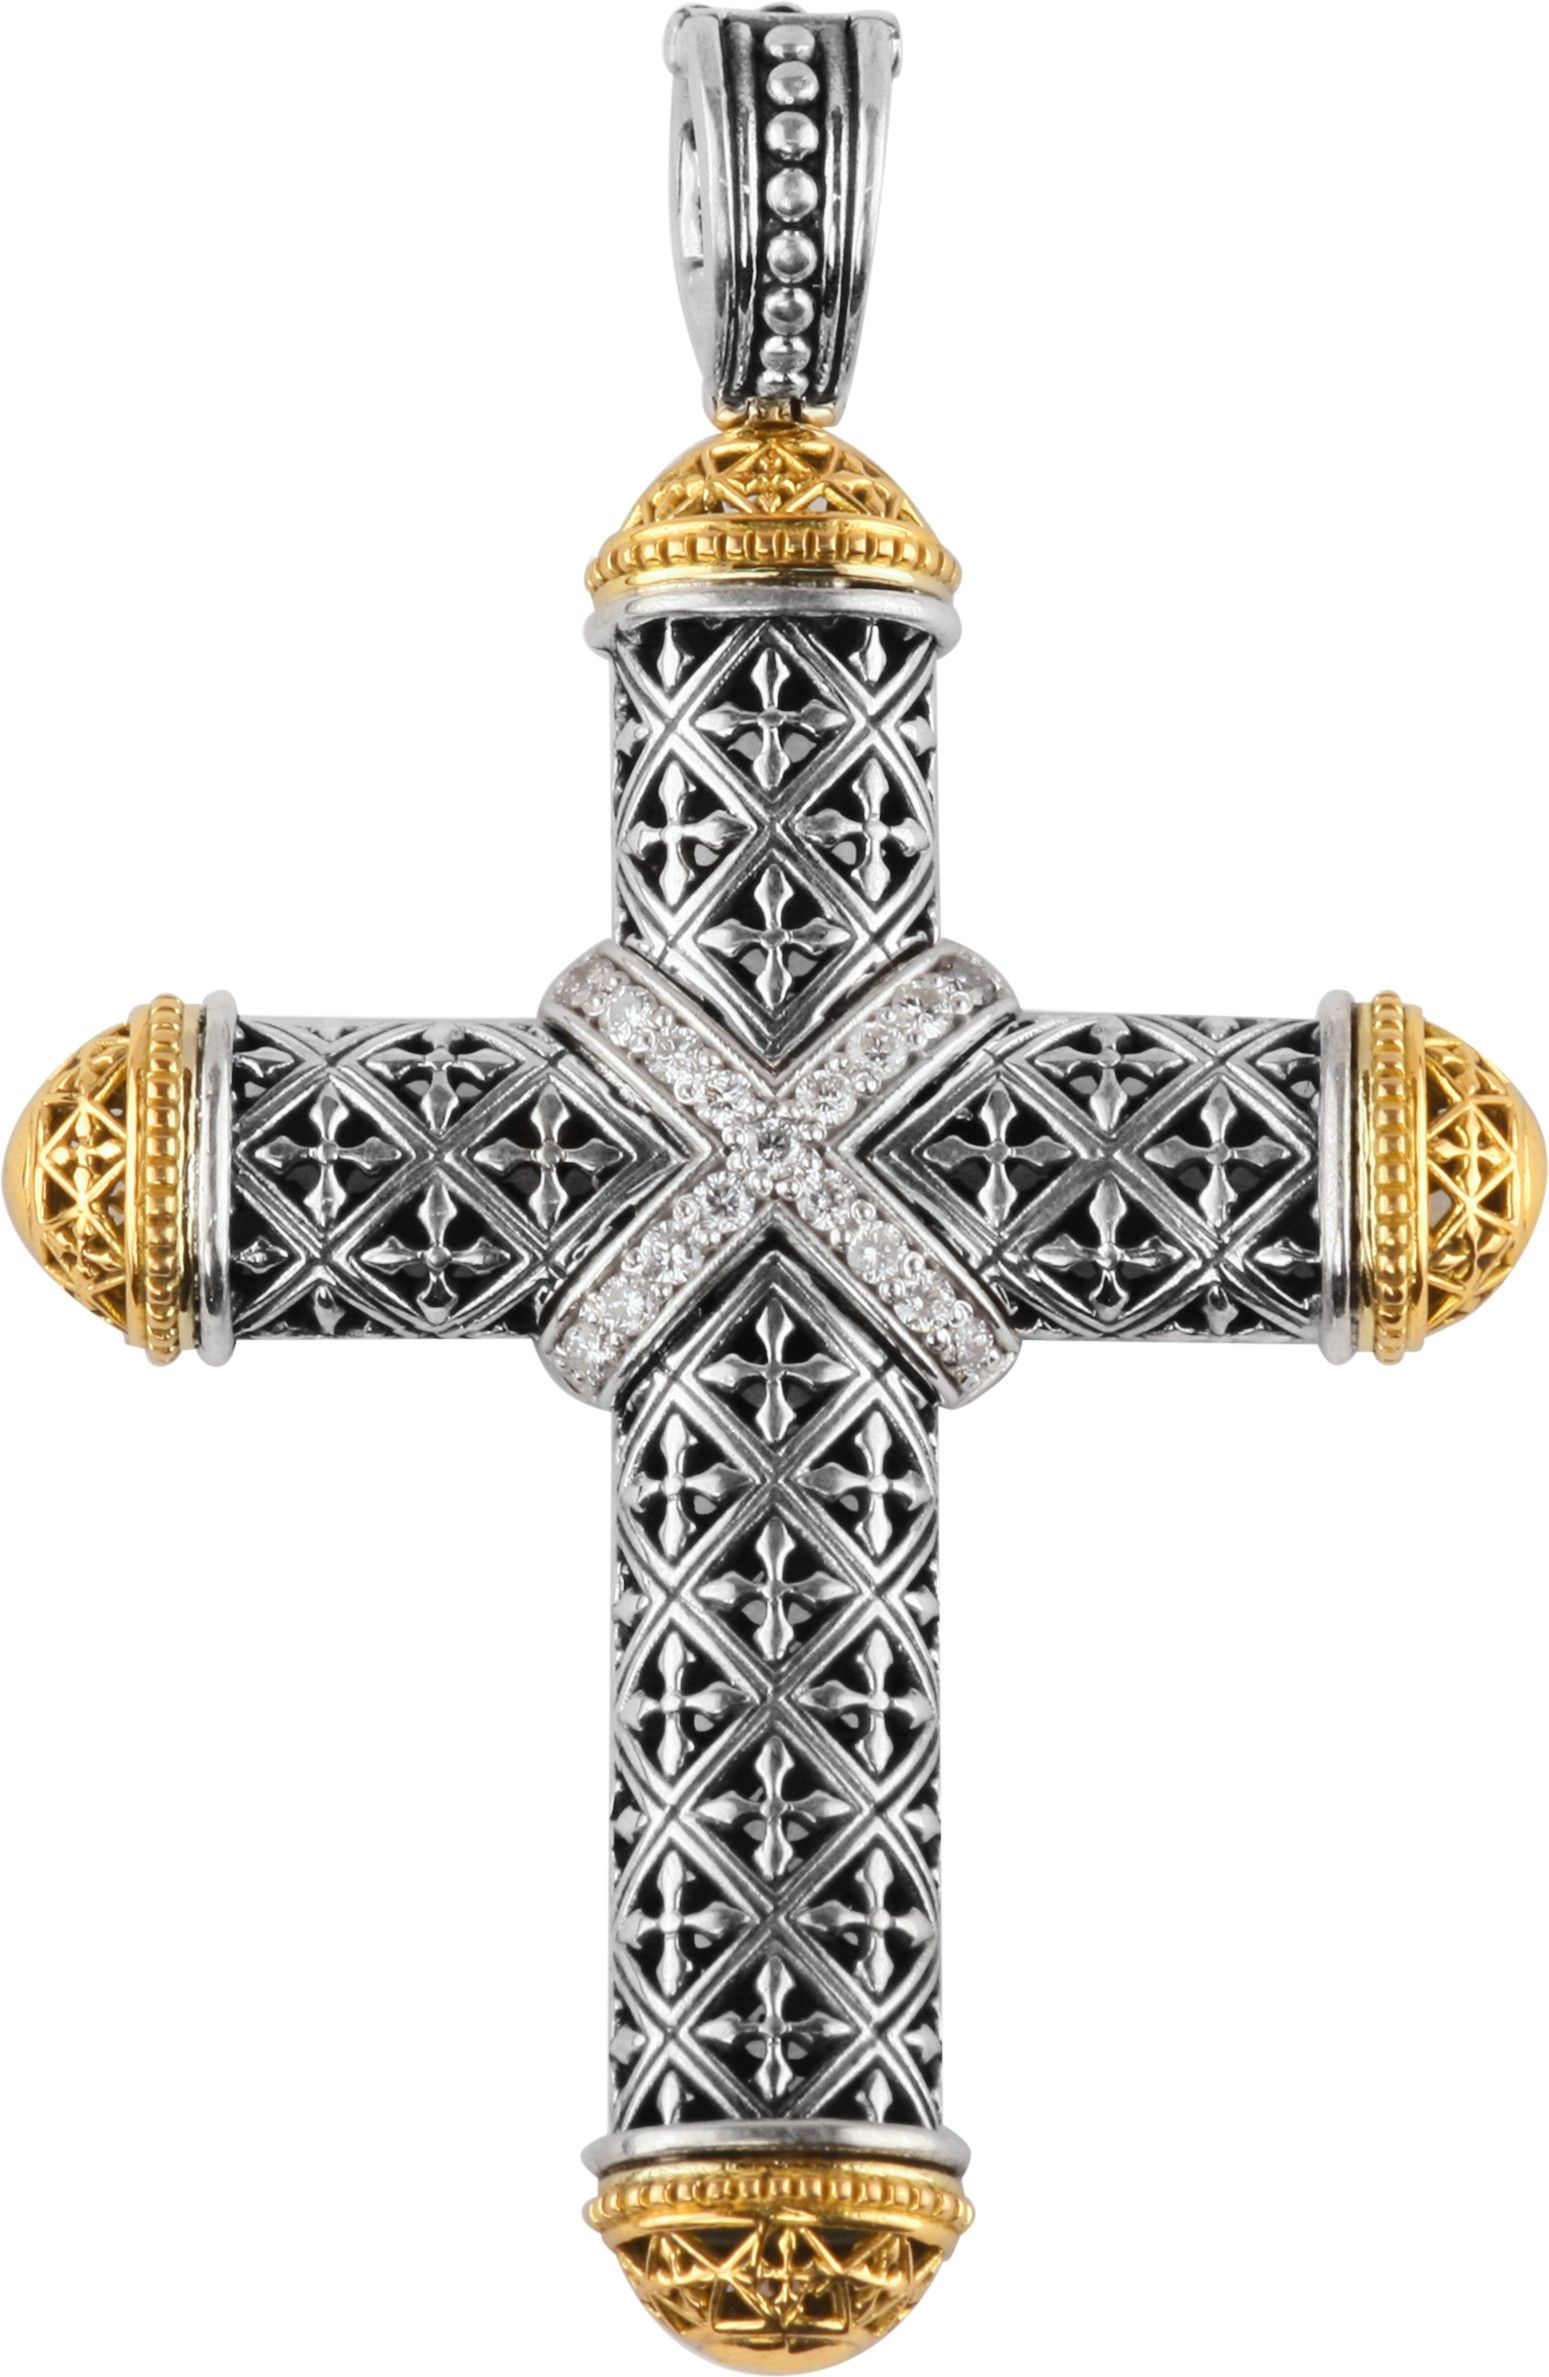 Konstantino sterling silver 18k gold cross pendant fashionfine konstantino sterling silver 18k gold cross pendant aloadofball Image collections